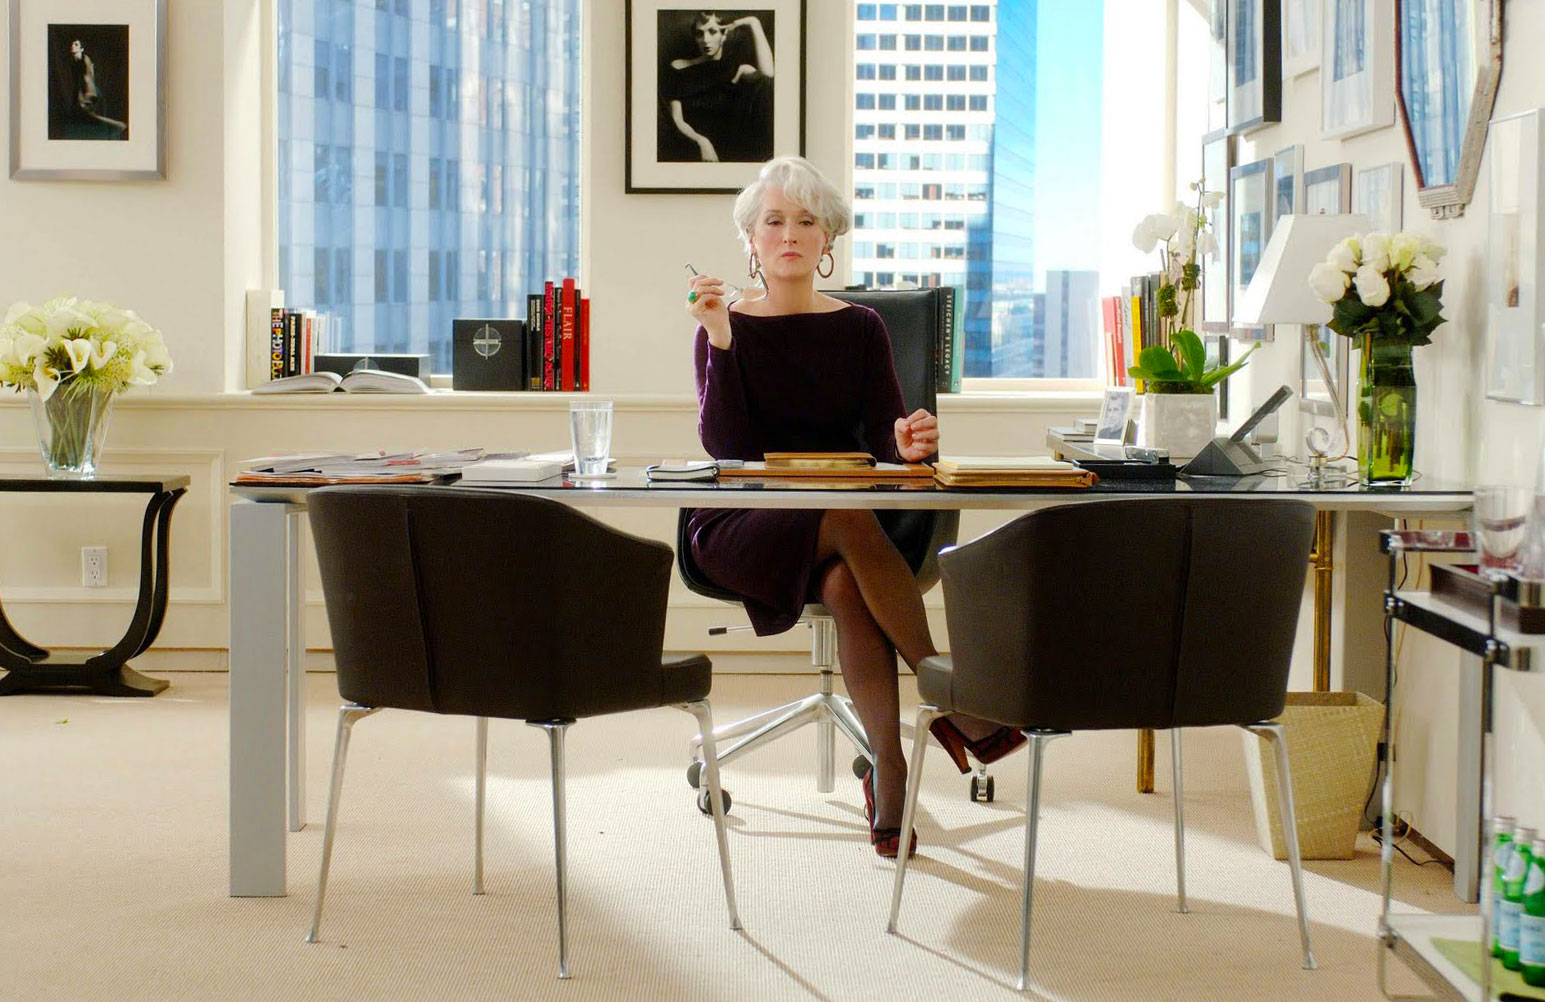 The Devil wears Prada: let's be inspired by Miranda